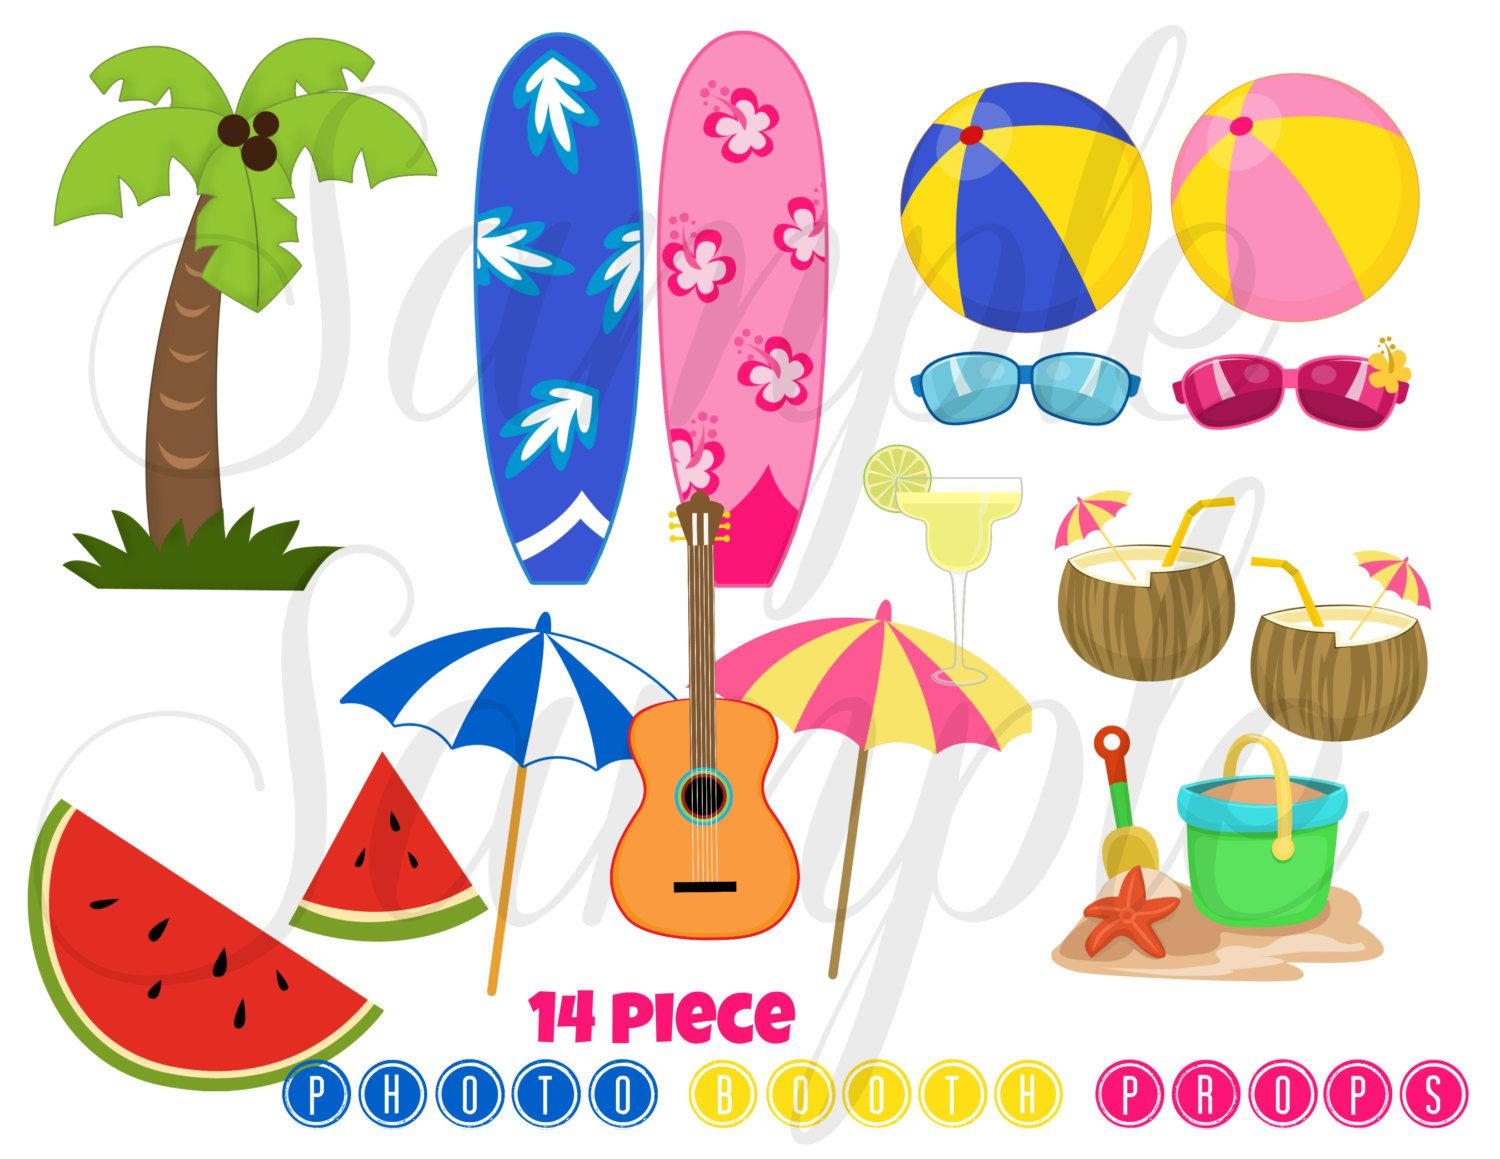 Instant Download Summer Beach Party 16 Piece Photo Booth Props - Hawaiian Photo Booth Props Printable Free